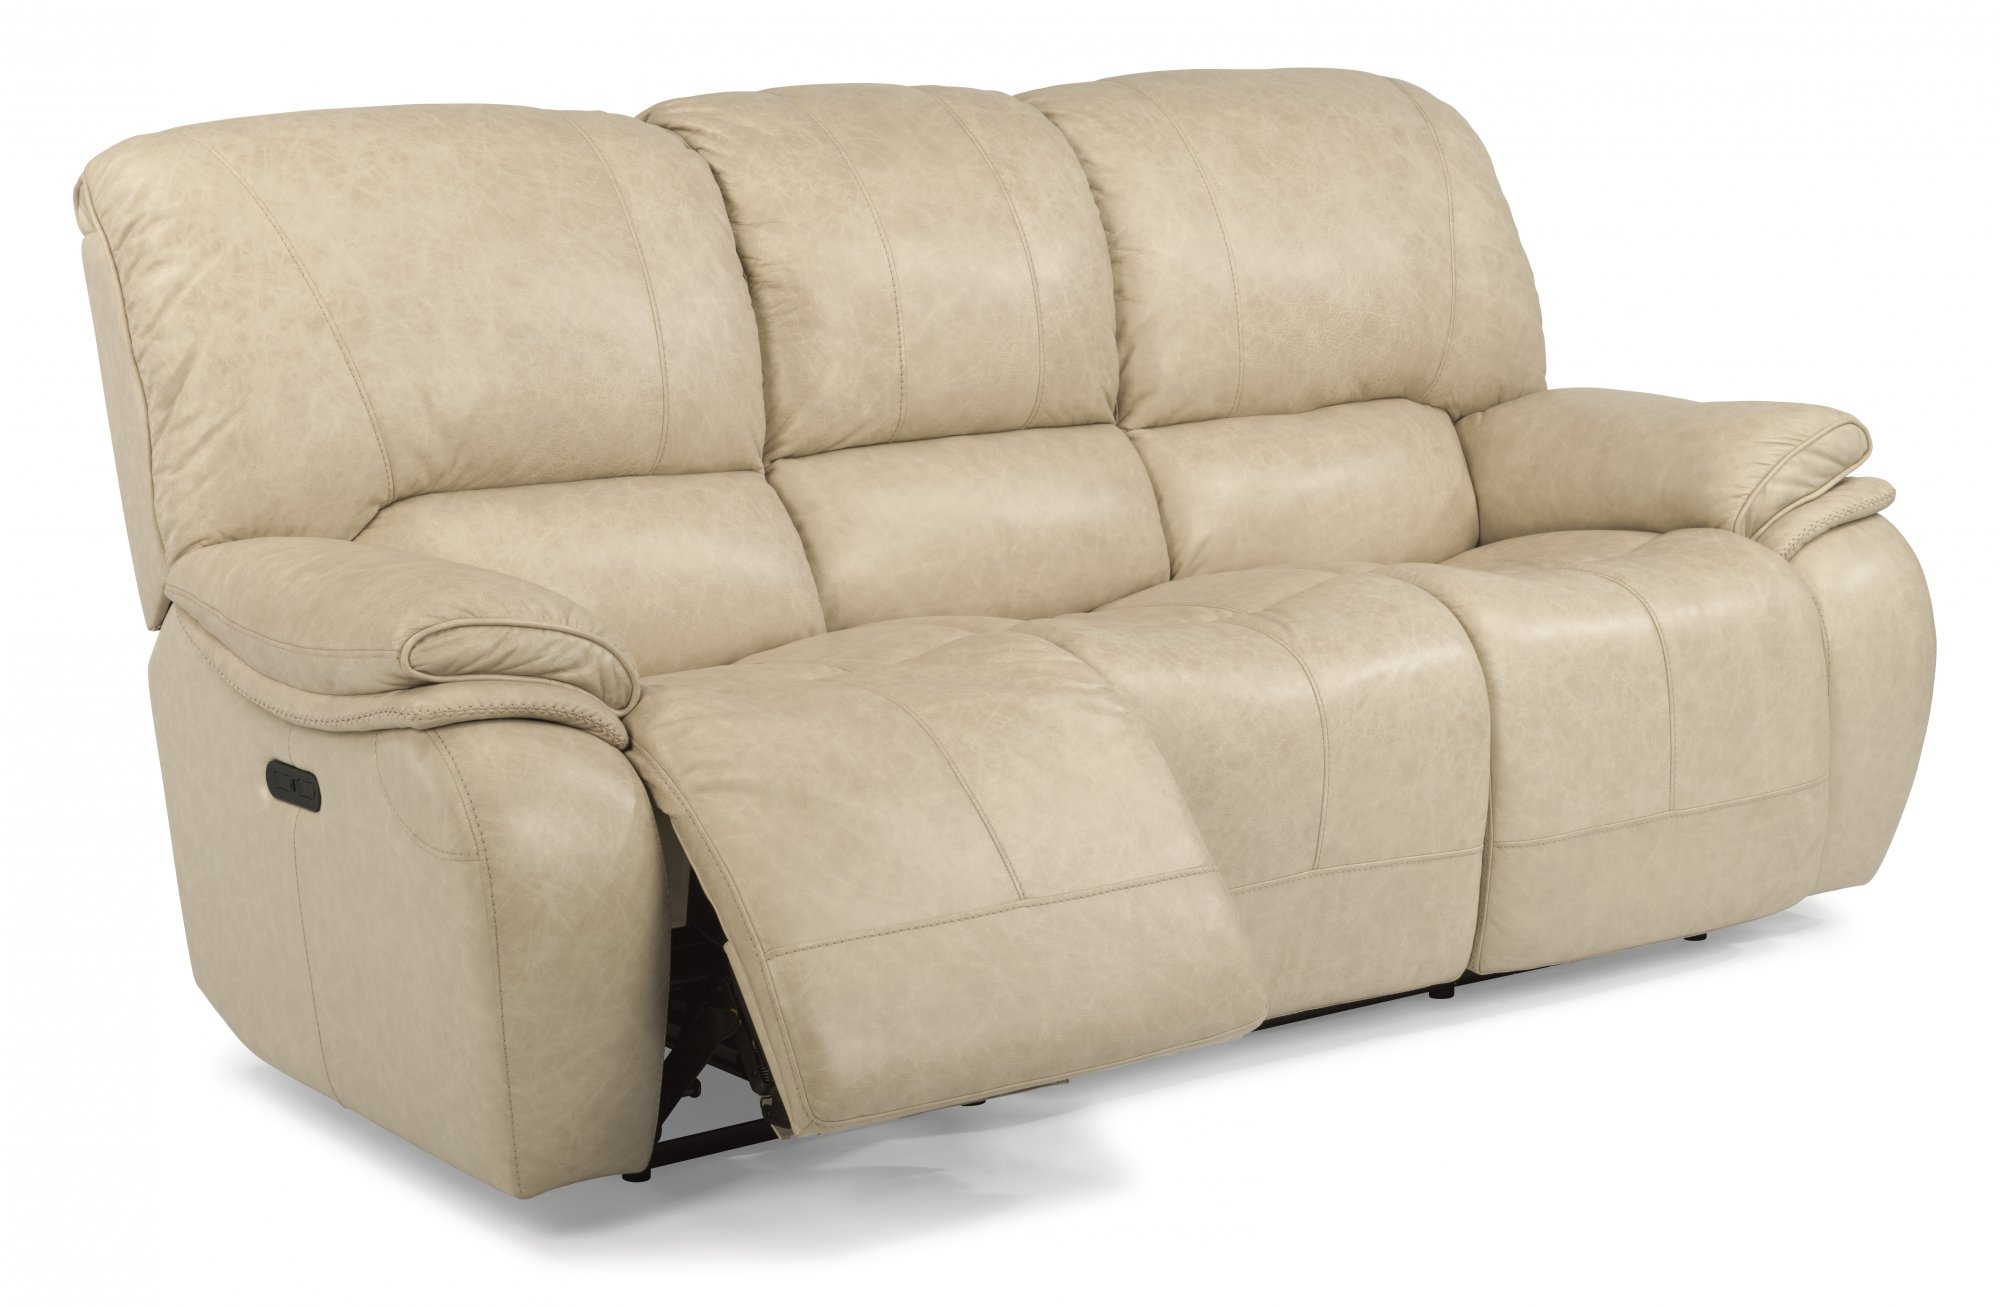 reclining mage sofa sears queen size bed recliner chairs and sofas montgomery double